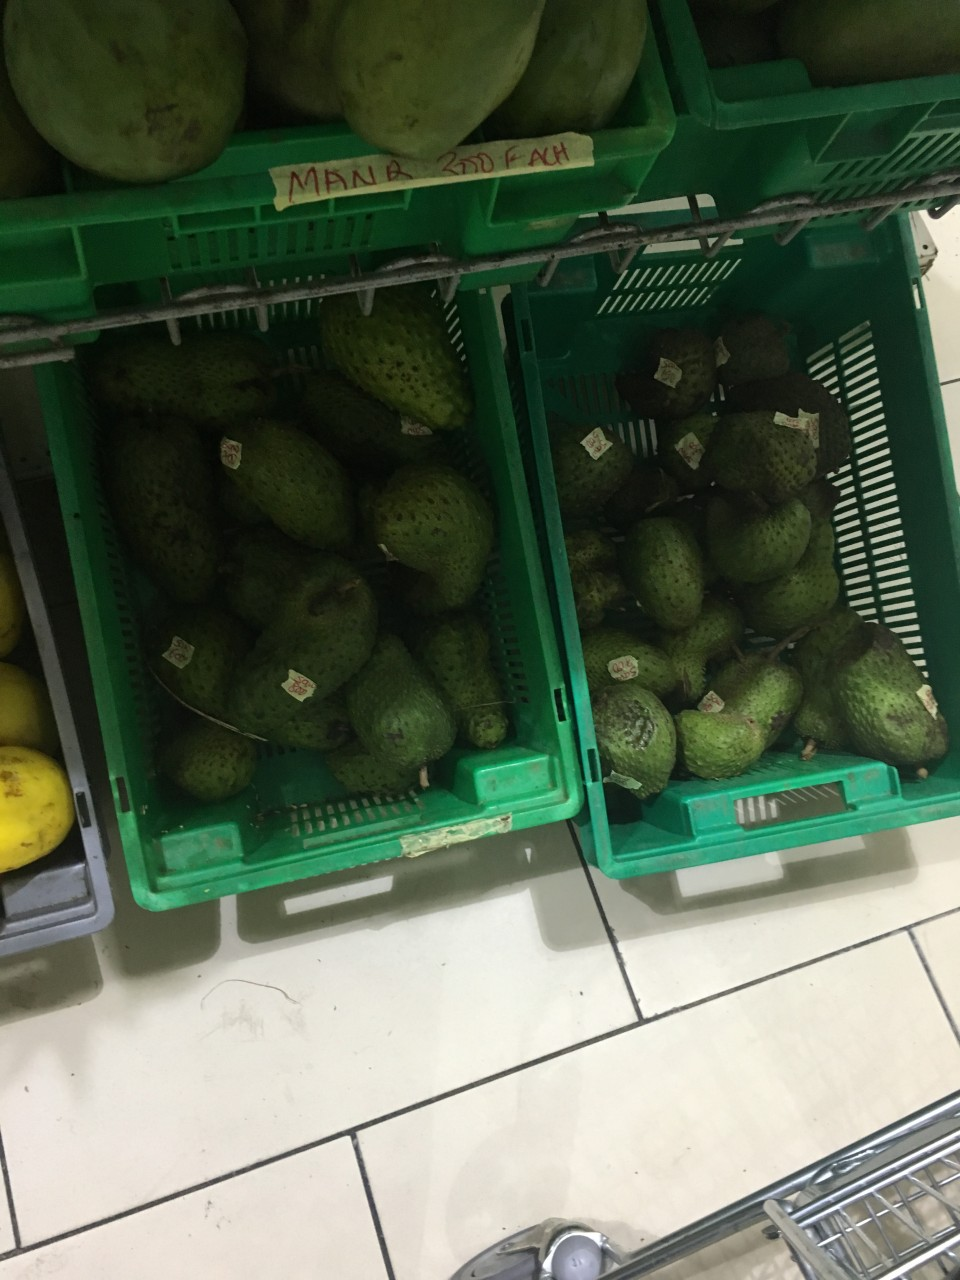 Supermarkets in Lekki - Ebeano Supermarket